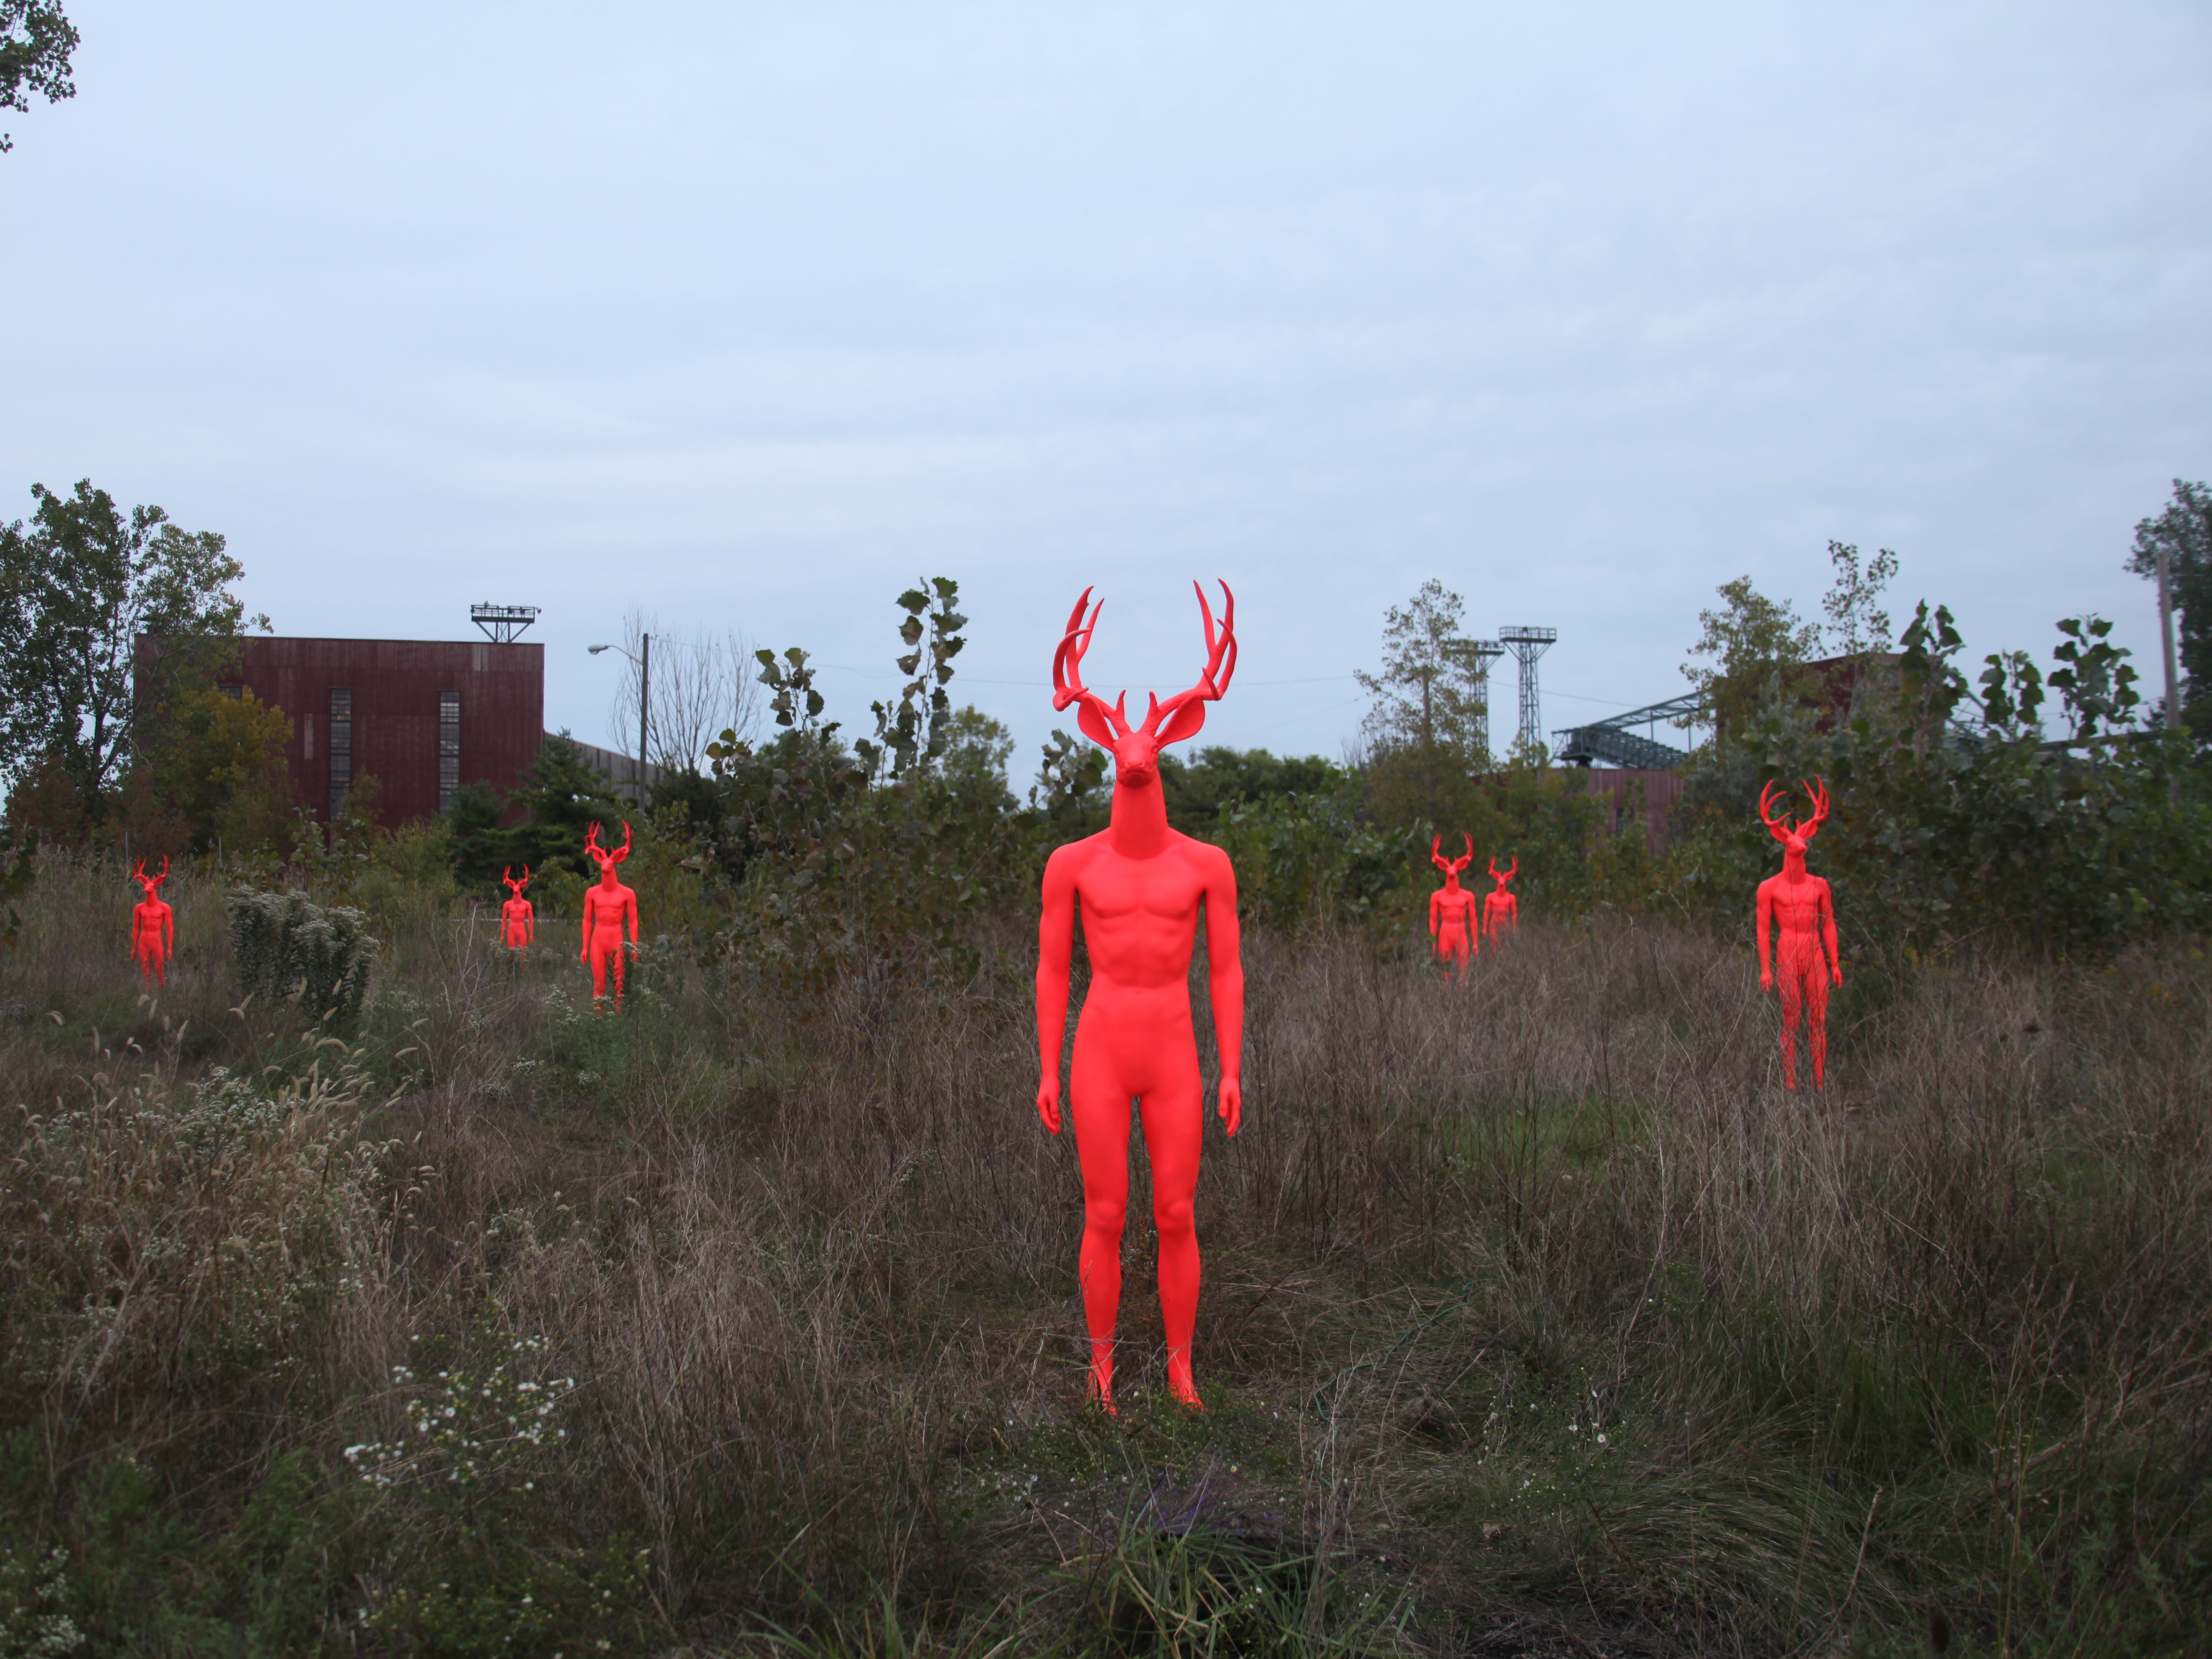 """Titled """"Spirit of the Forest,"""" the seven cast aluminum human-like figures with deer heads are individually illuminated by UV footlights. They are scattered throughout an overgrown field and appear to be emerging toward the viewer on a semi-circular footpath flanked by huge concrete planters."""